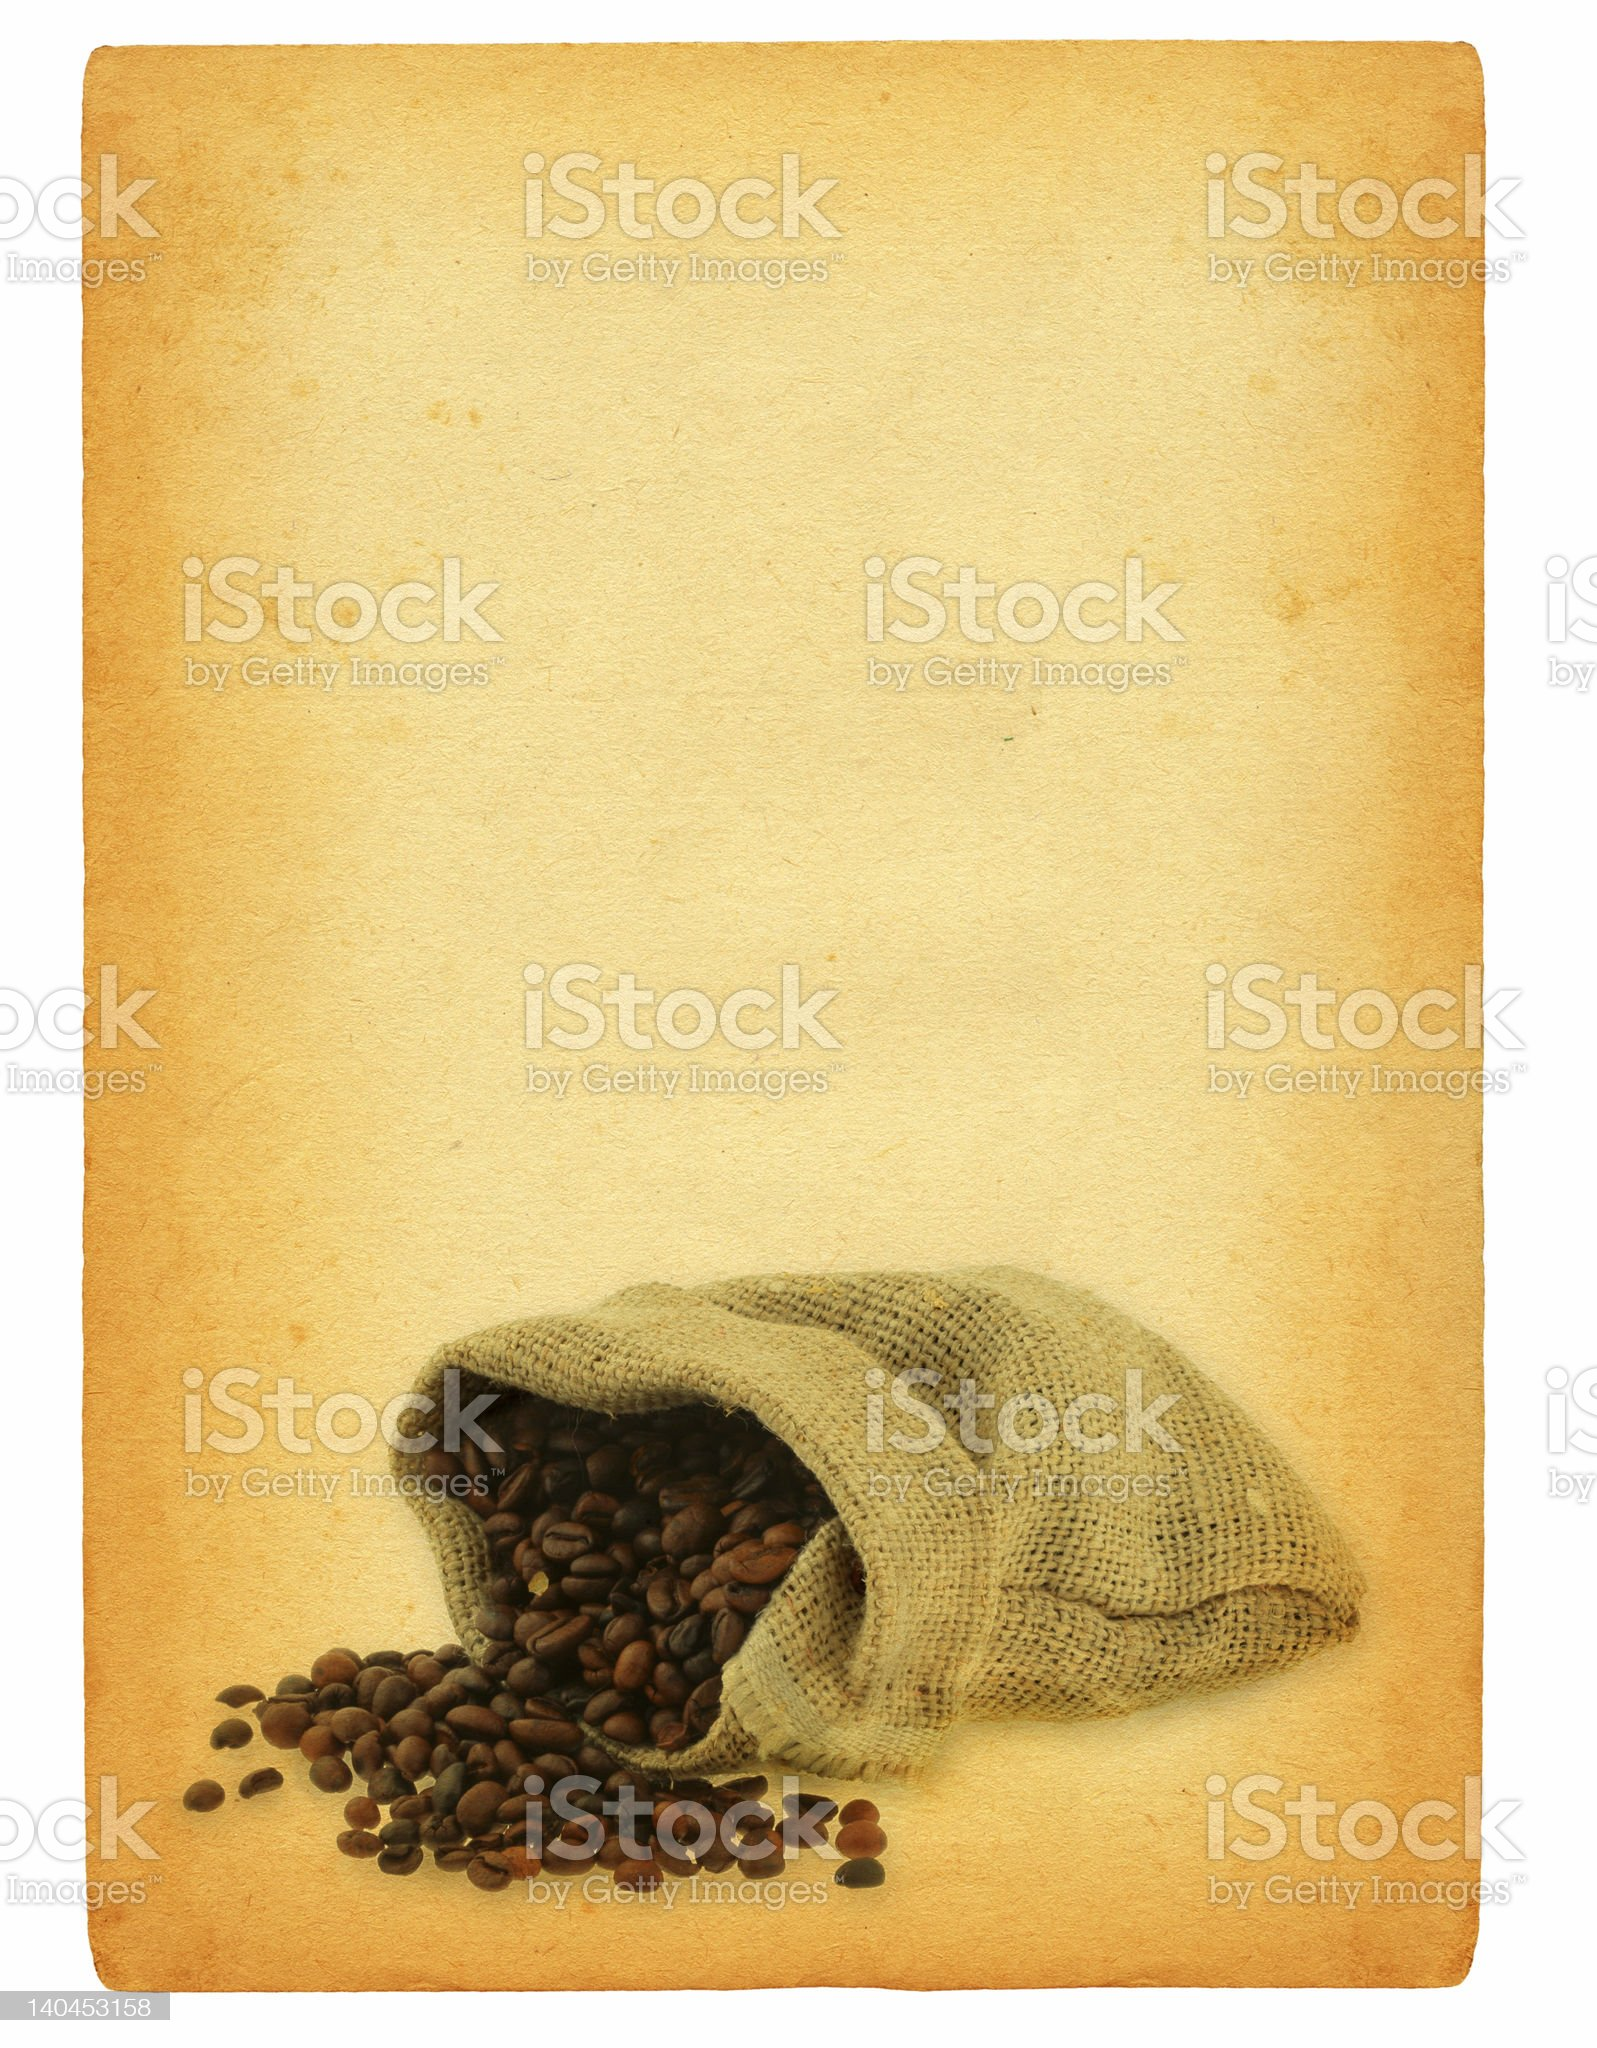 sheet of old paper with spilled coffee motif royalty-free stock photo